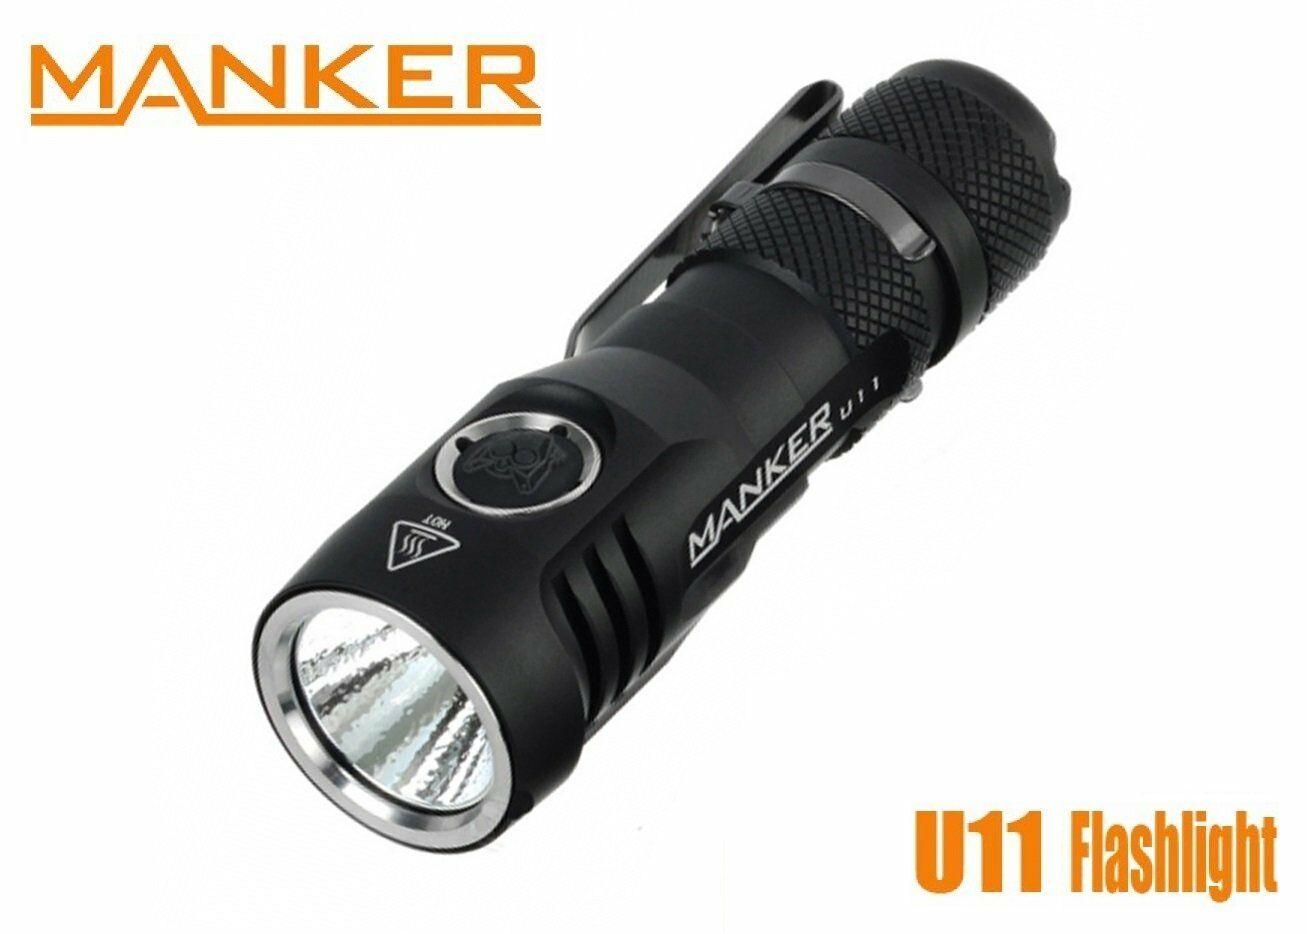 New Manker U11 (Warm) USB Rechargeable Cree XP-L 1050LM LED Flashlight Torch